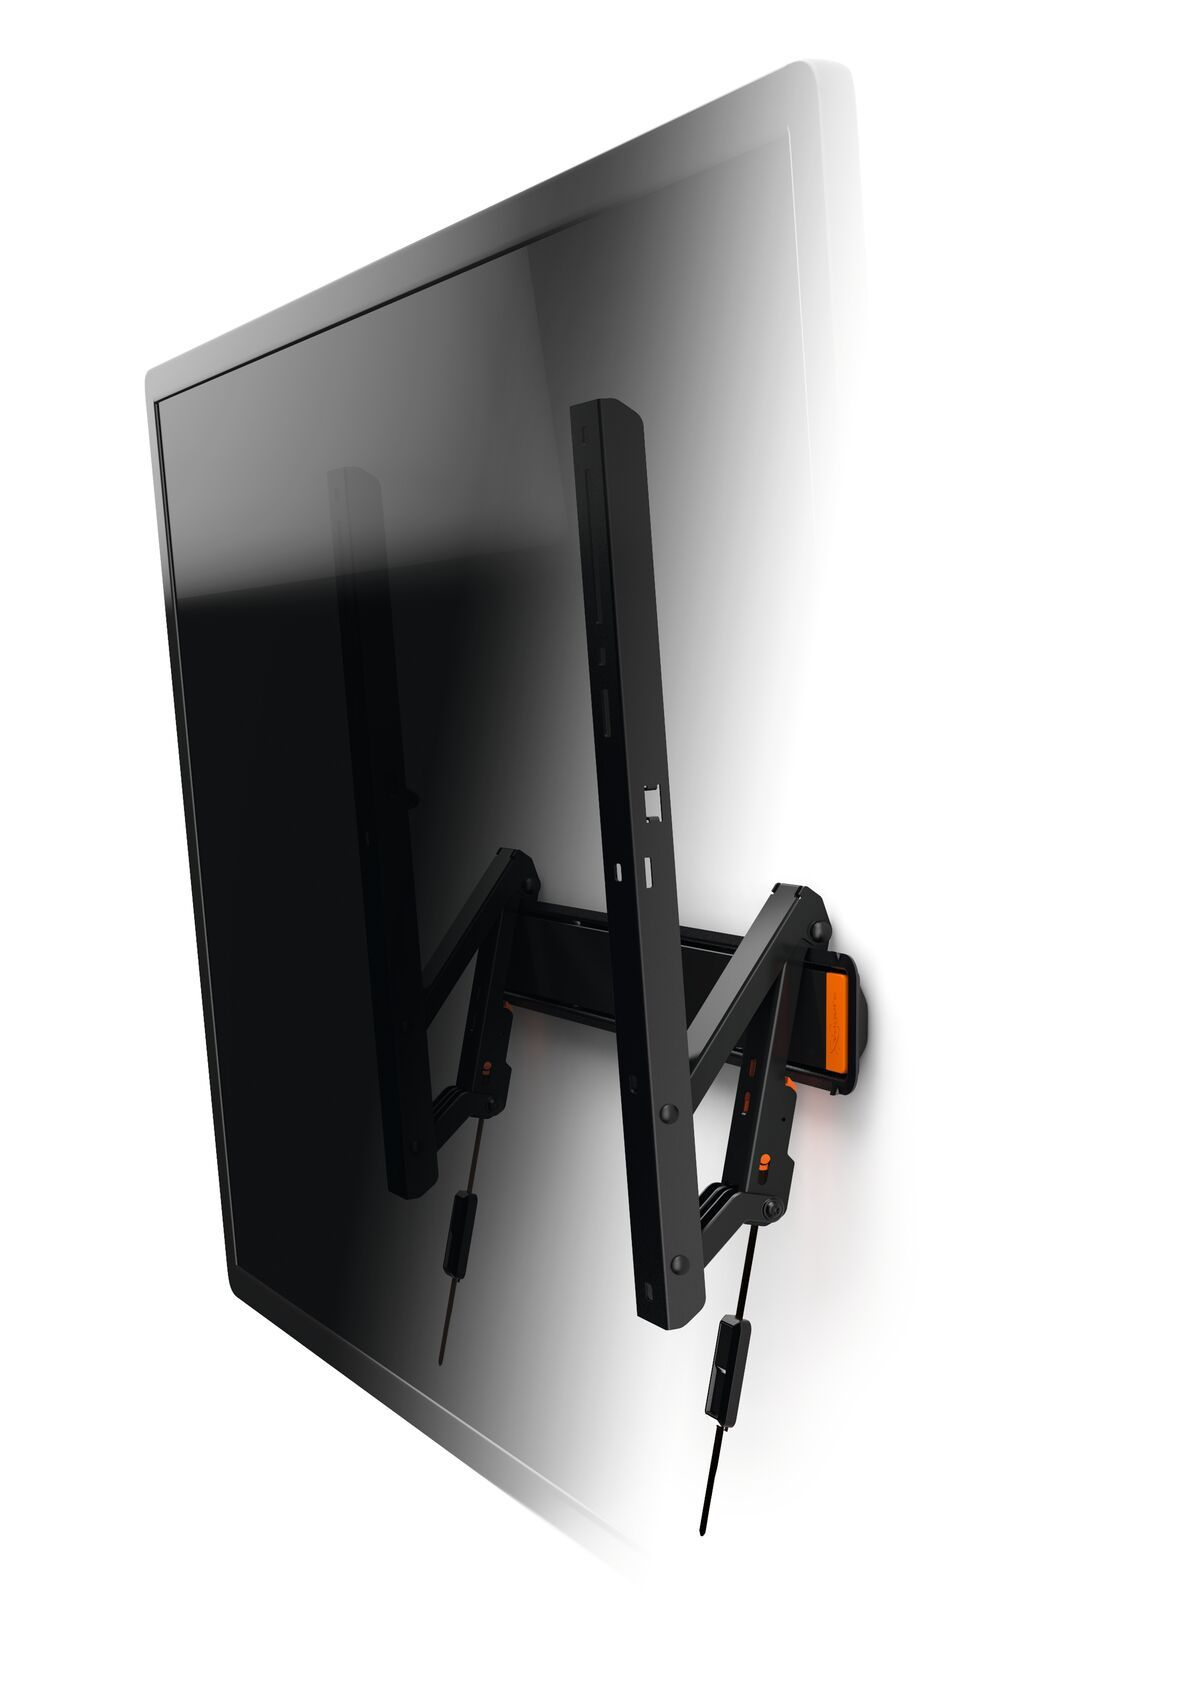 Vogel's WALL 2215 Tilting TV Wall Mount - Suitable for Tilt up to 15° - Suitable for Detail